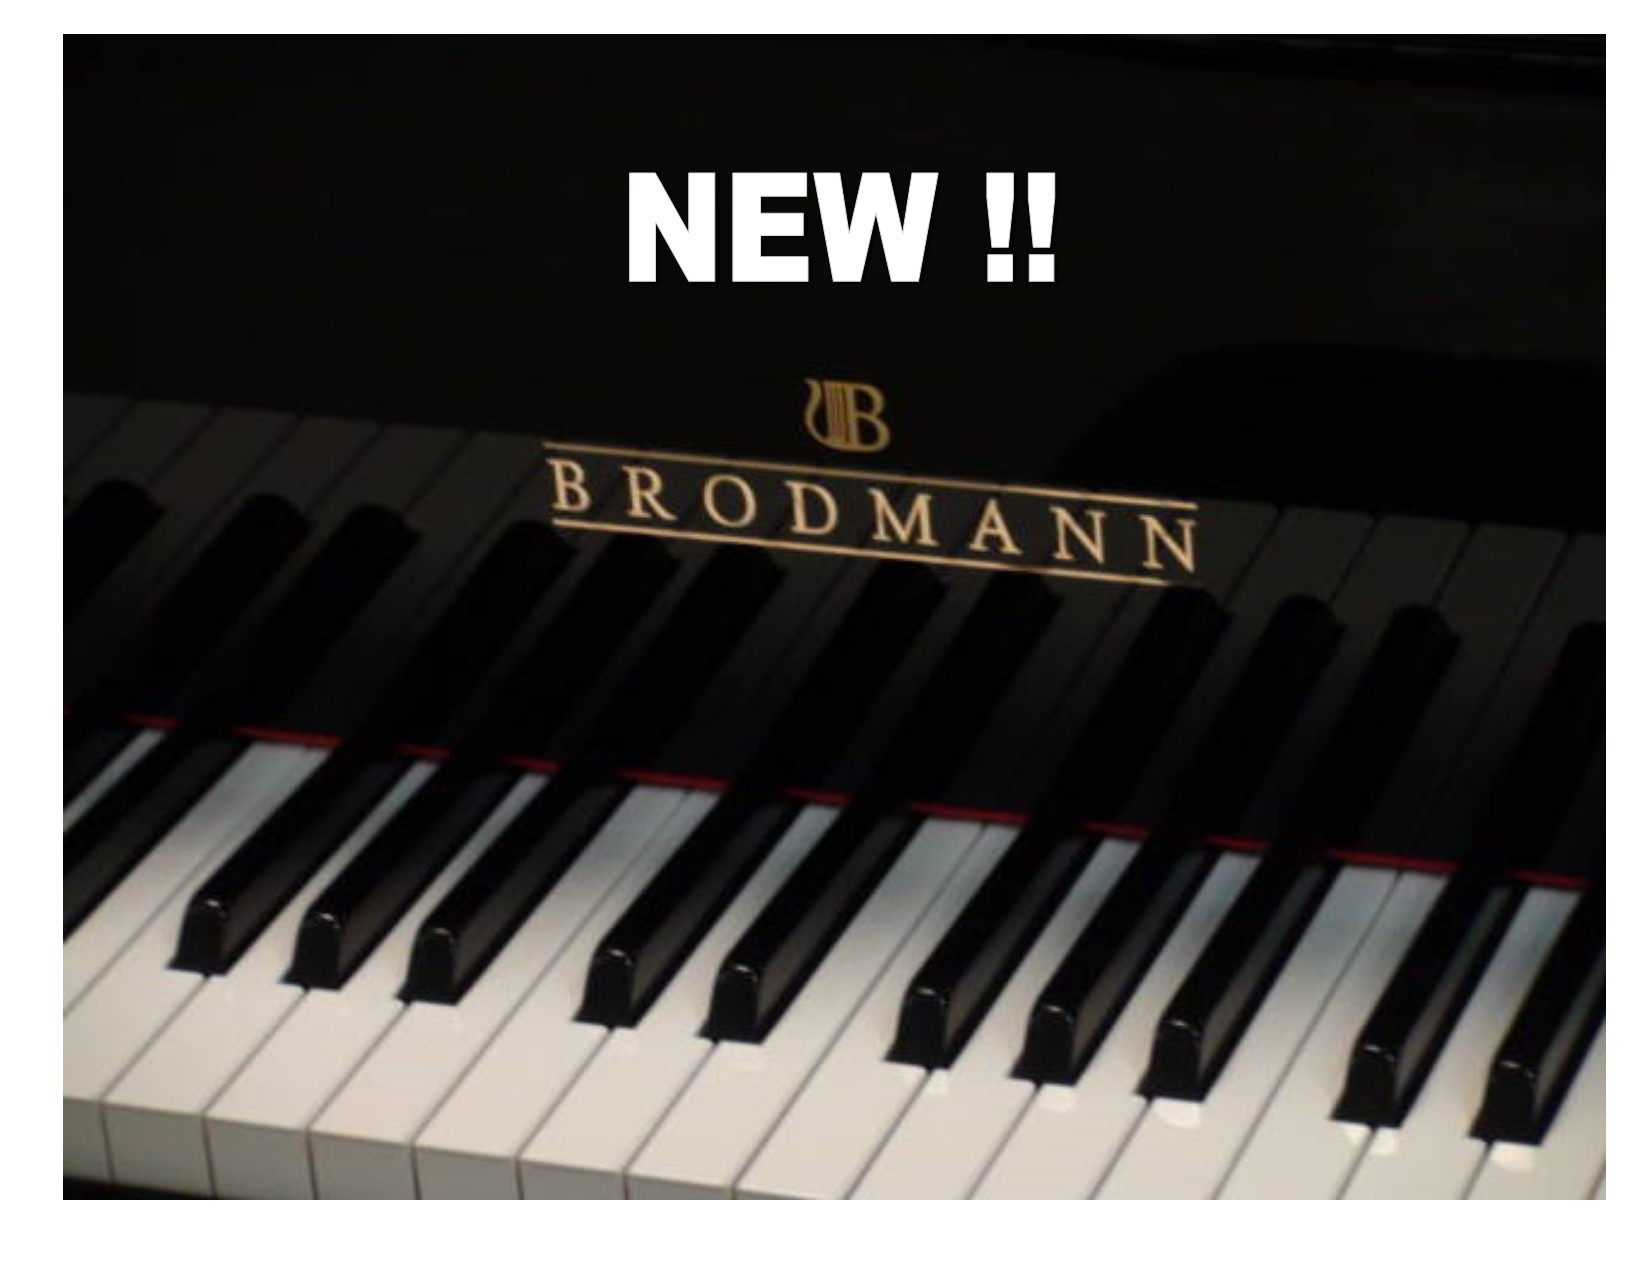 12808-<br><font color=black><b>NEW BRODMANN </b></font> 5'4″ GRAND PIANO <br>•European Built<br> •European Tradition<br> •European Sound